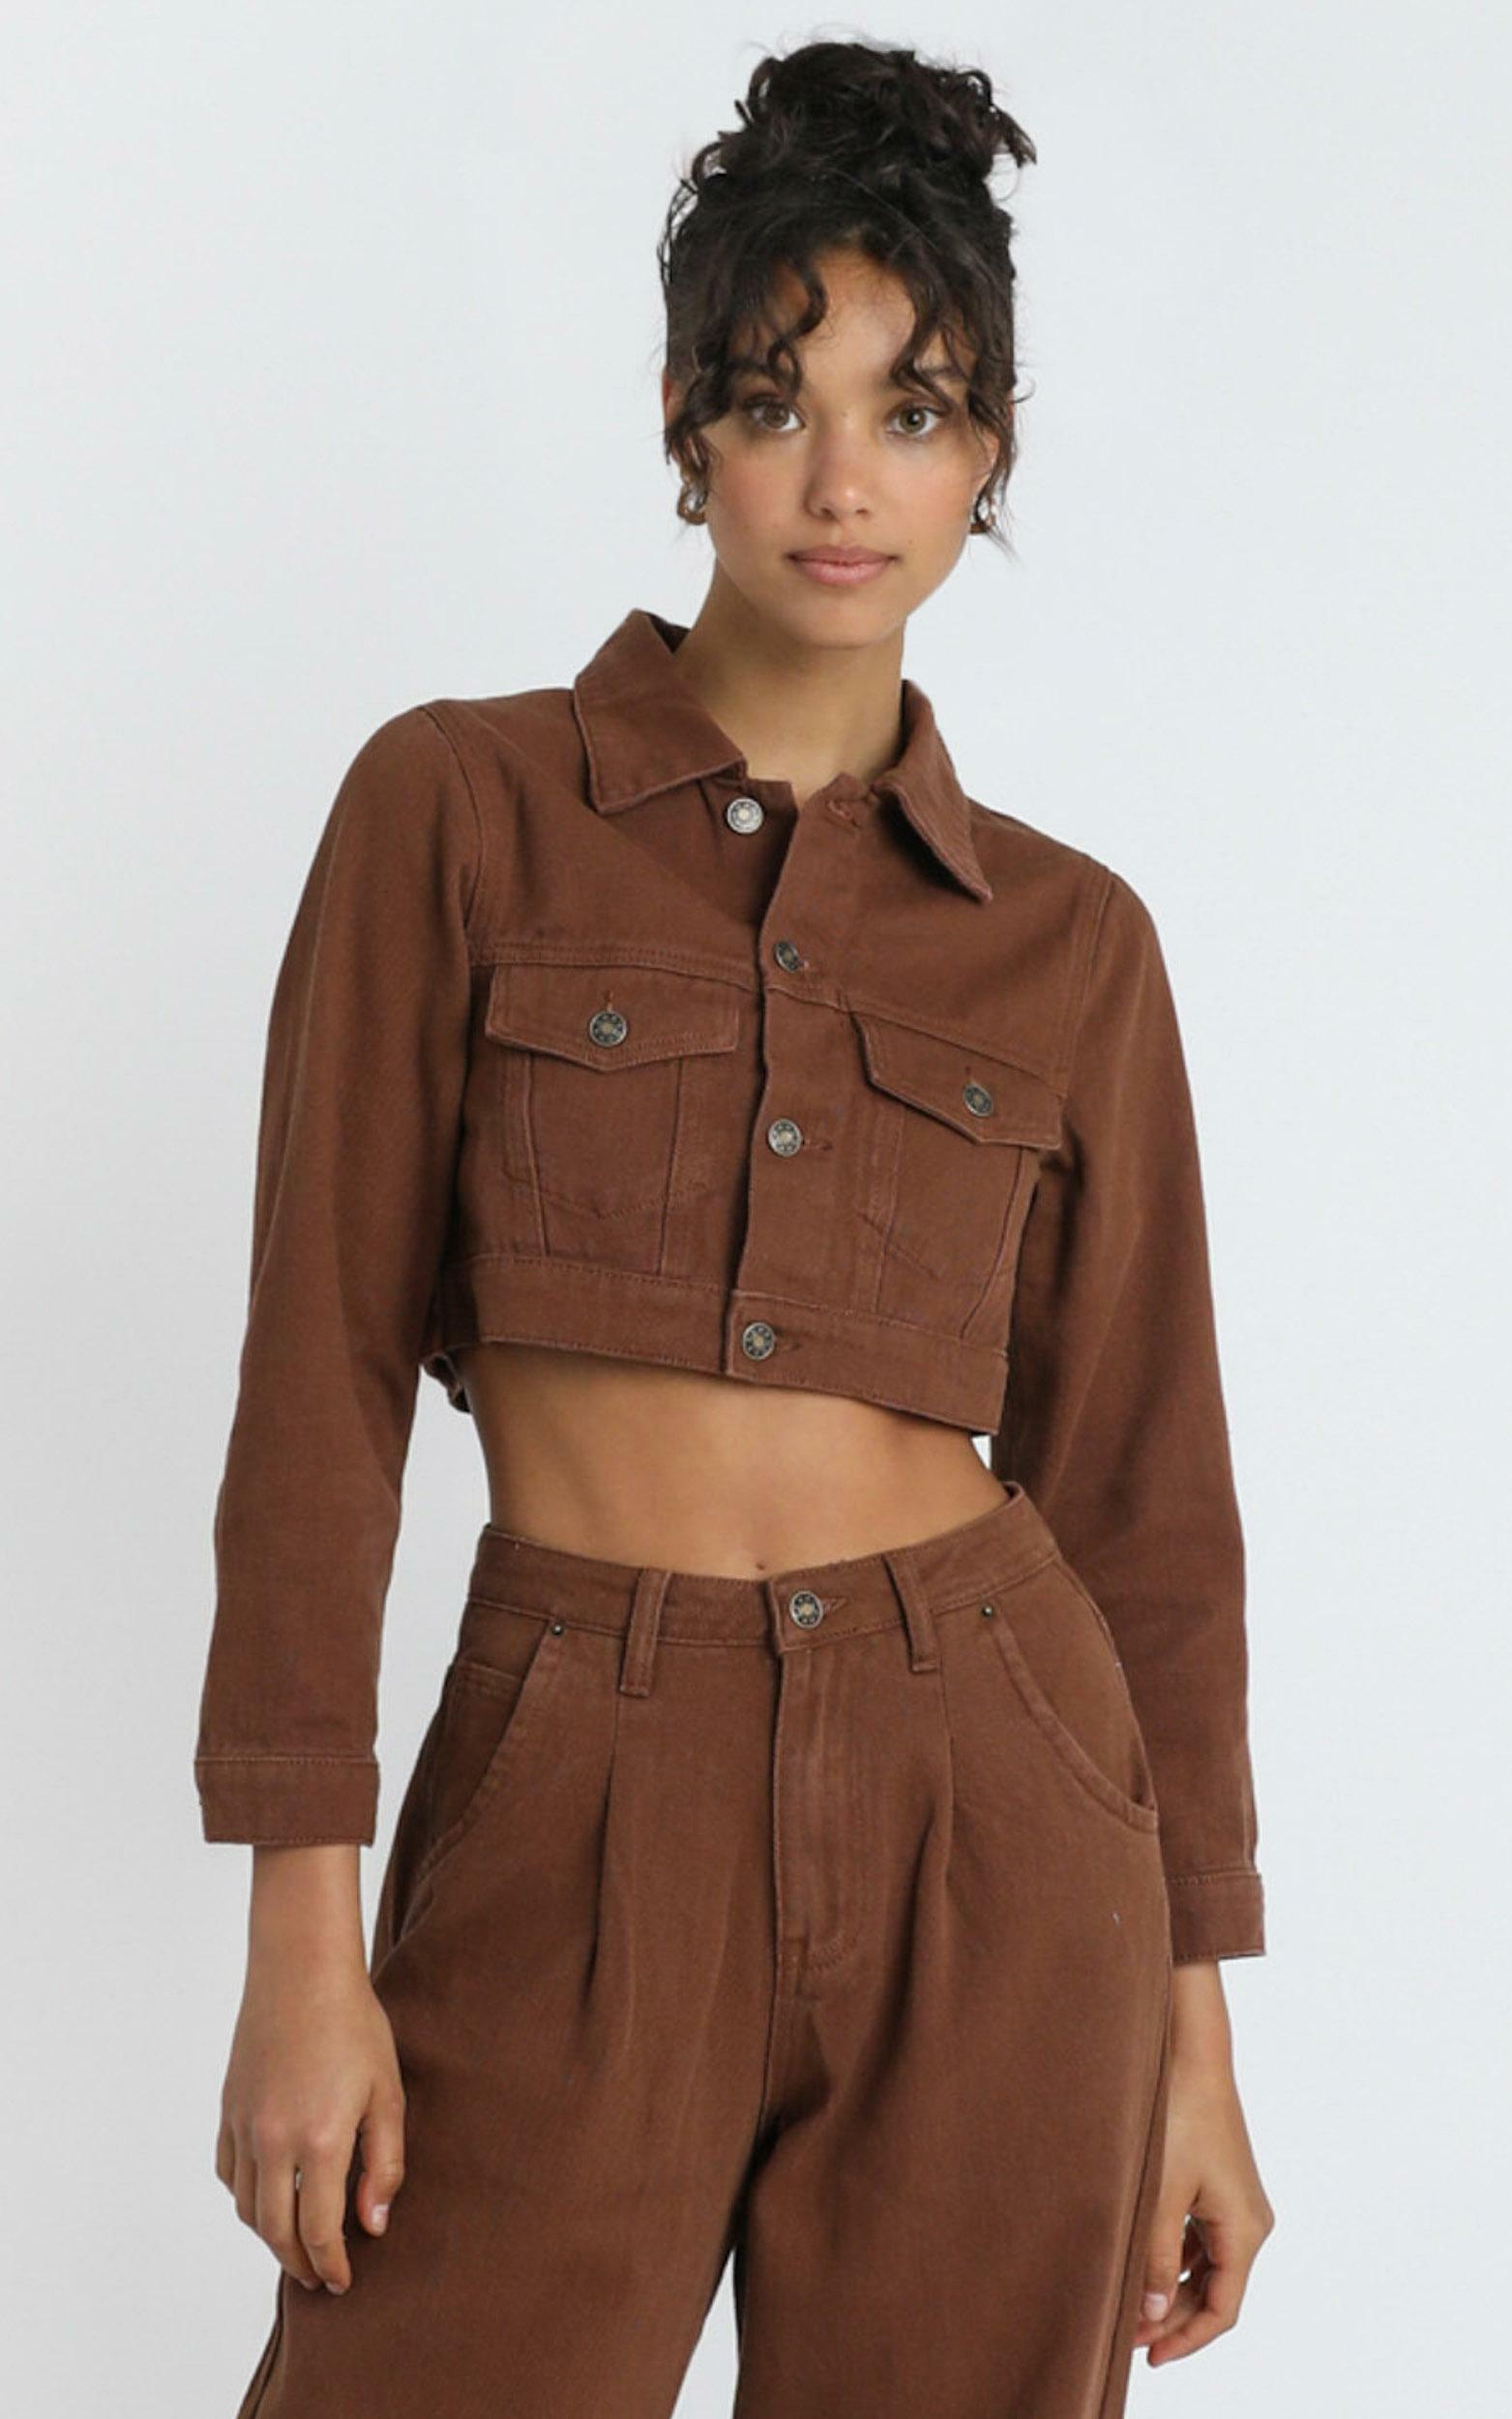 Lioness - The Mickey Jacket in Brown - 6 (XS), Brown, hi-res image number null